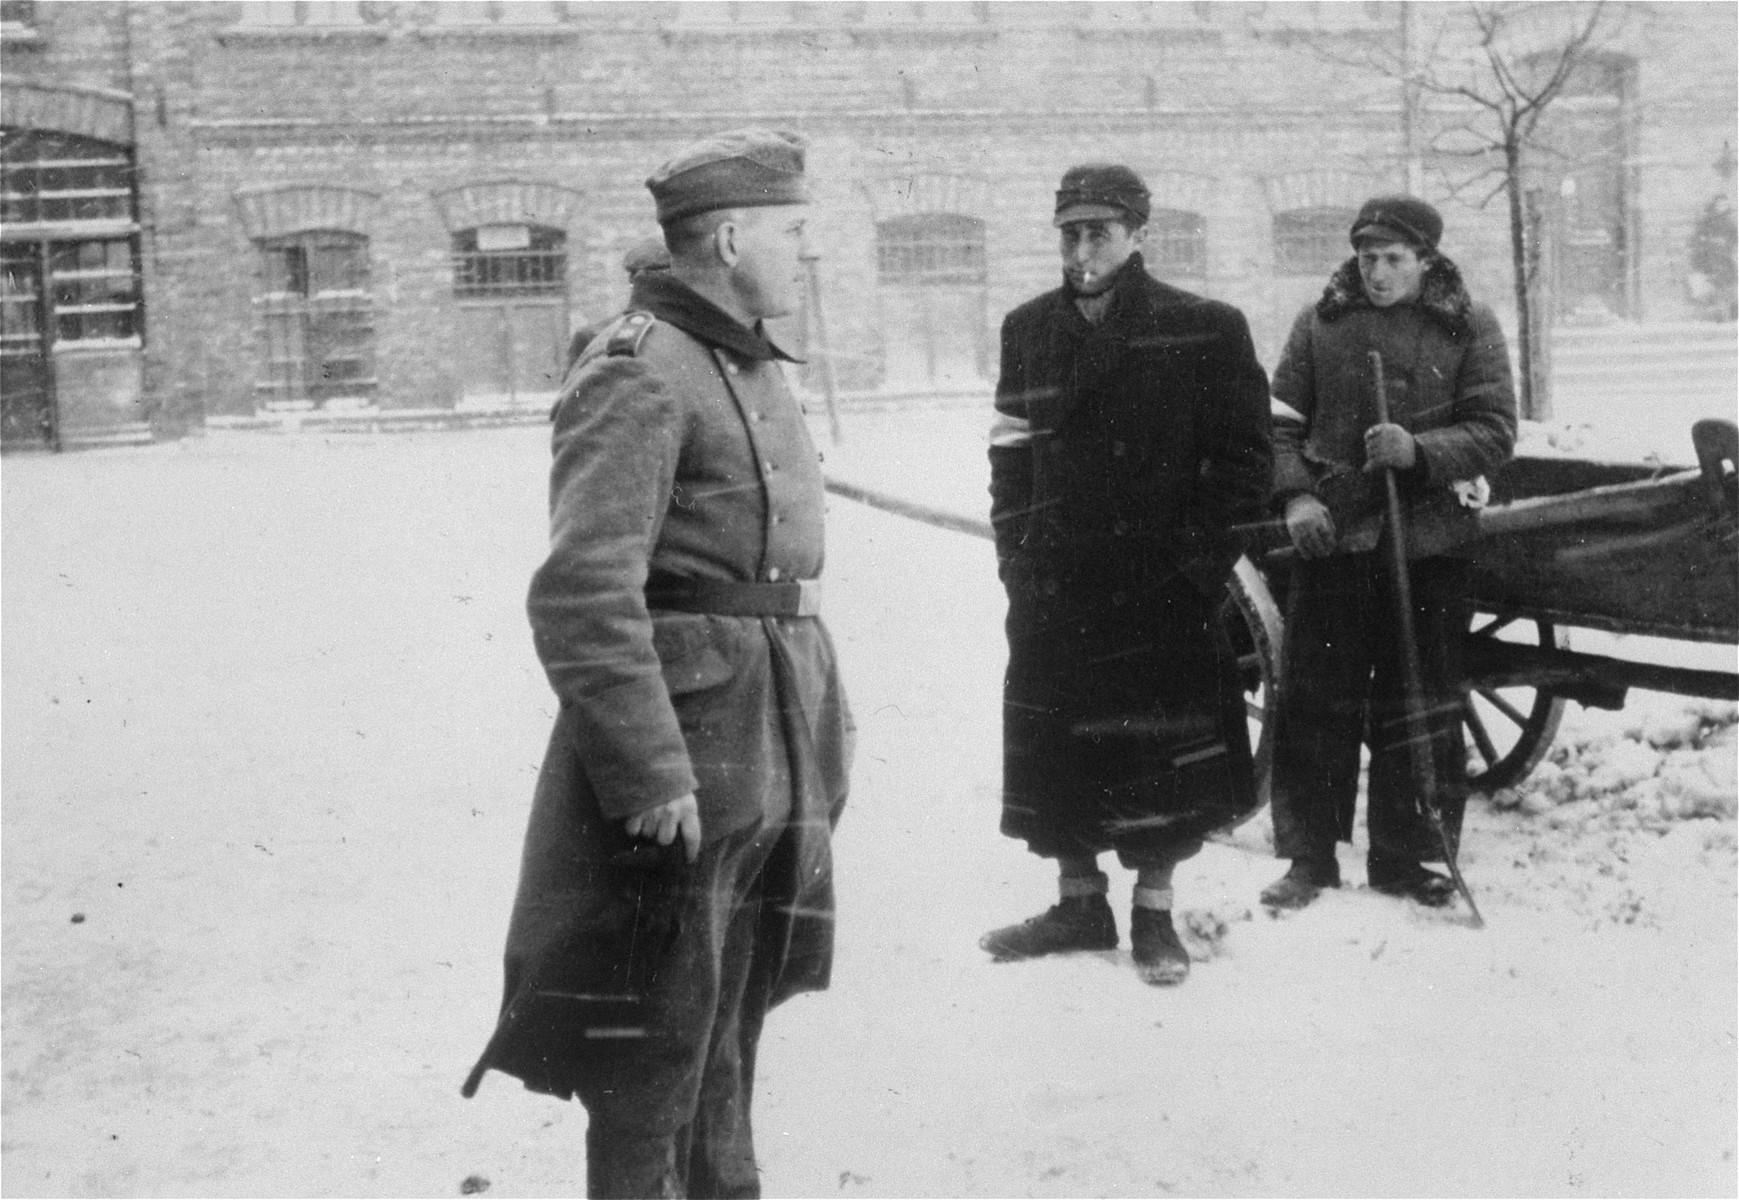 A German soldier stands next to two Jewish men who are clearing snow on a street in Czestochowa.